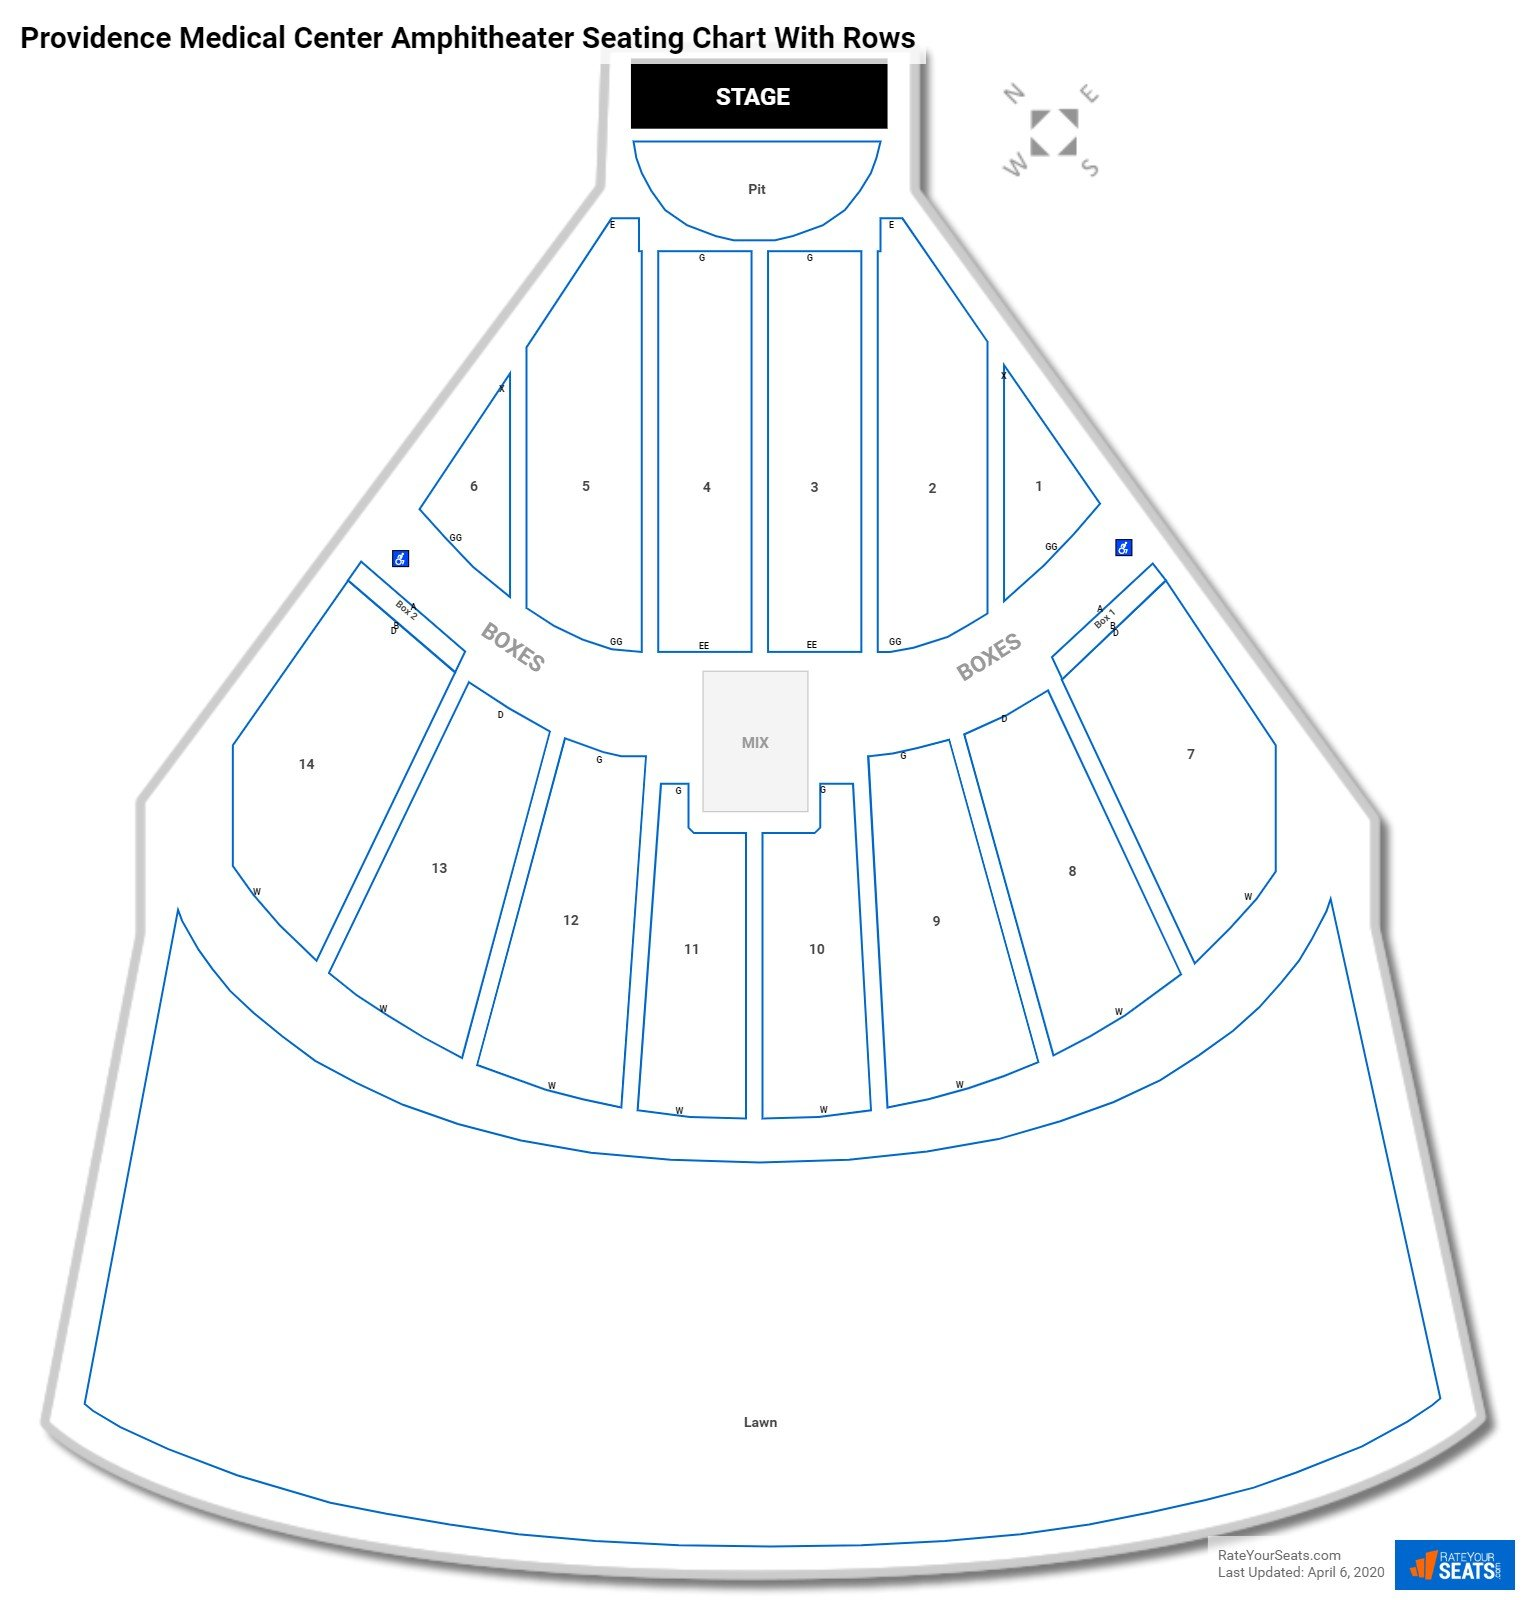 Providence Medical Center Amphitheater seating chart with rows